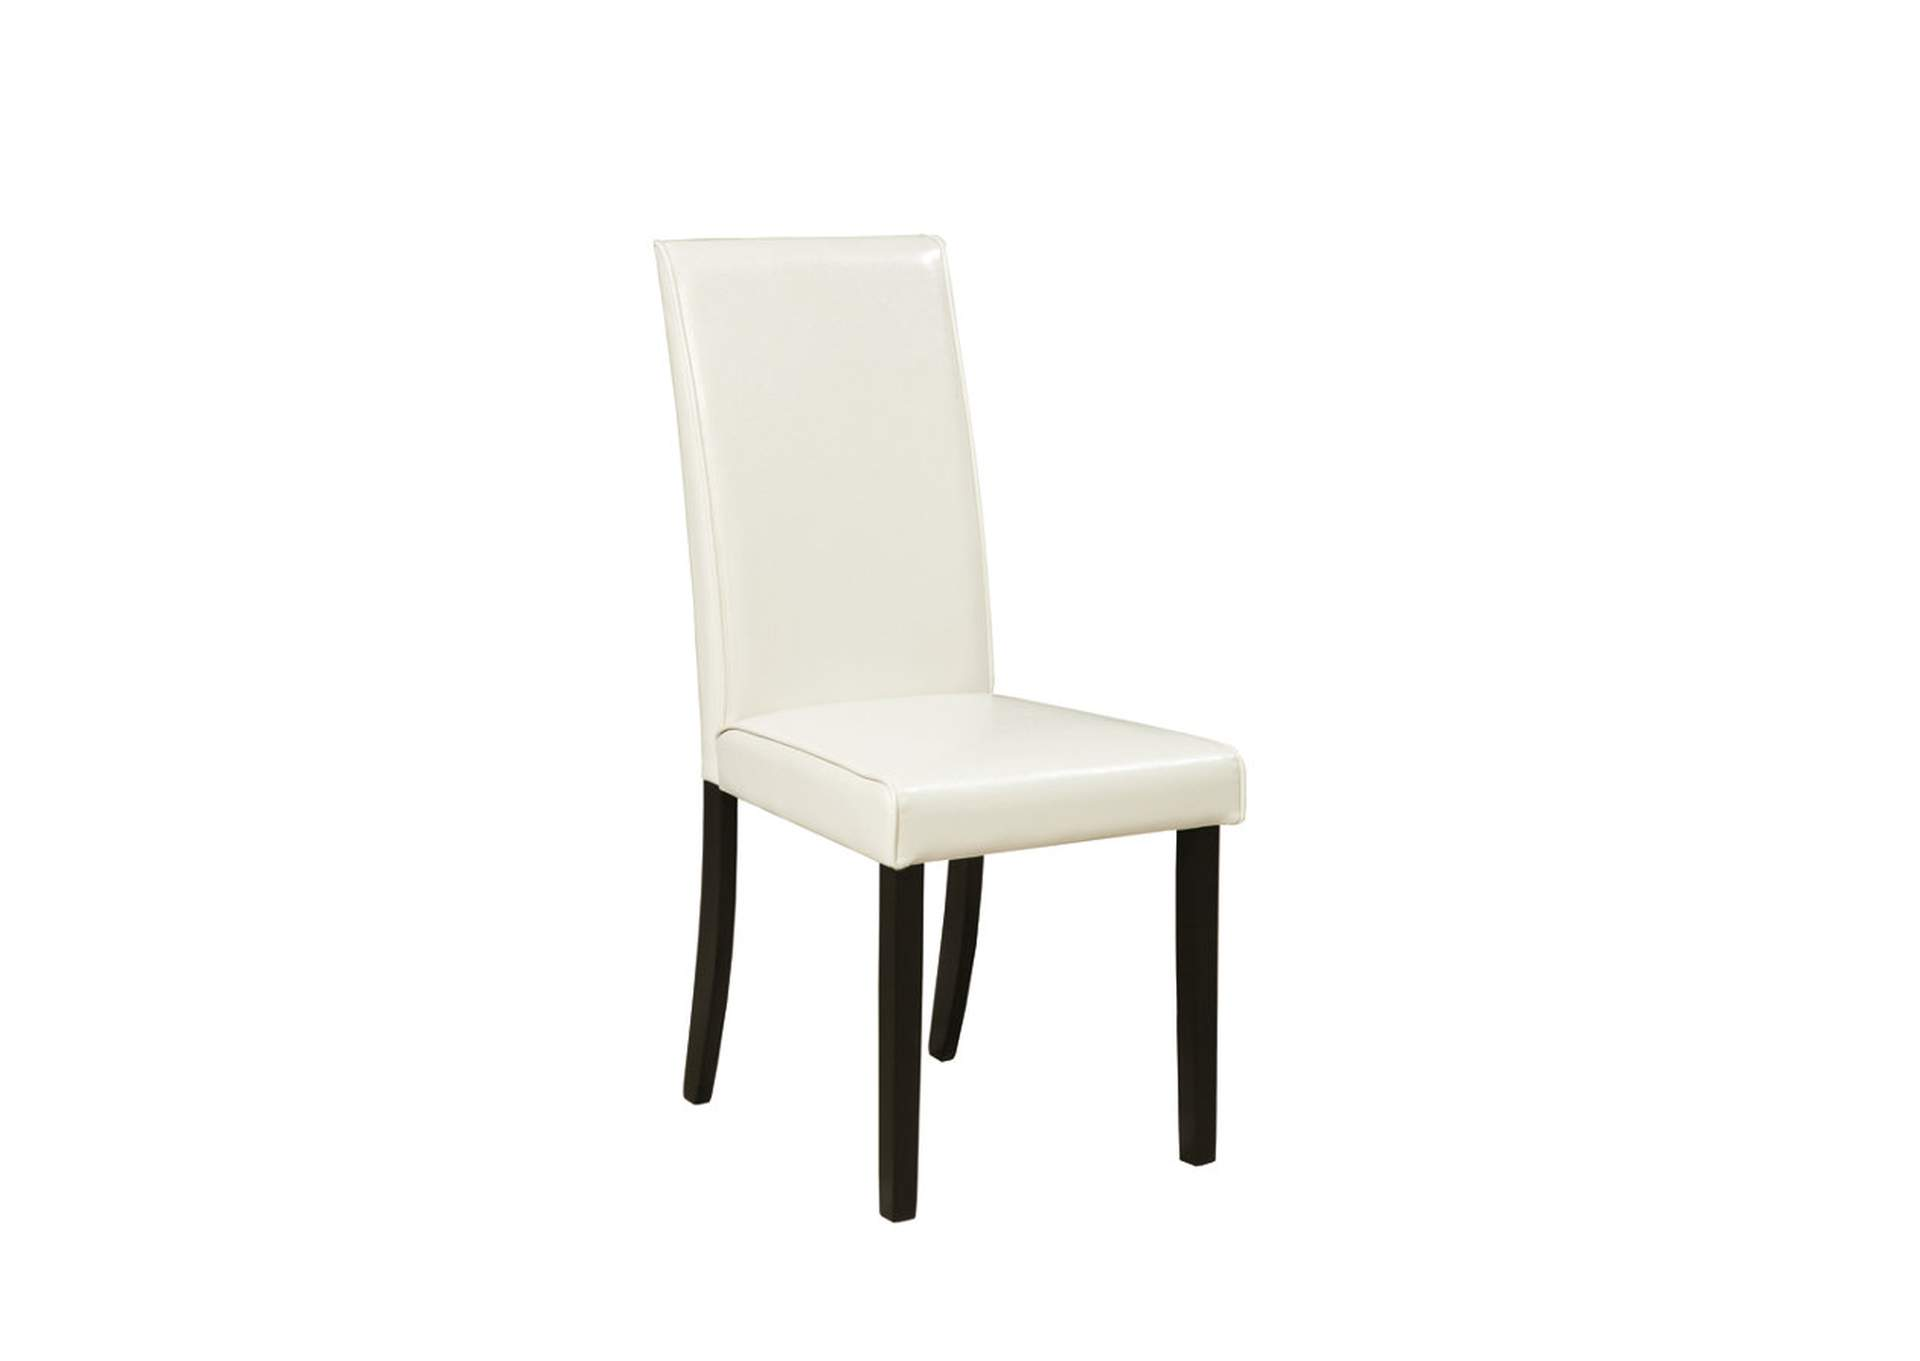 Kimonte Ivory Upholstered Chair (Set of 2),ABF Signature Design by Ashley